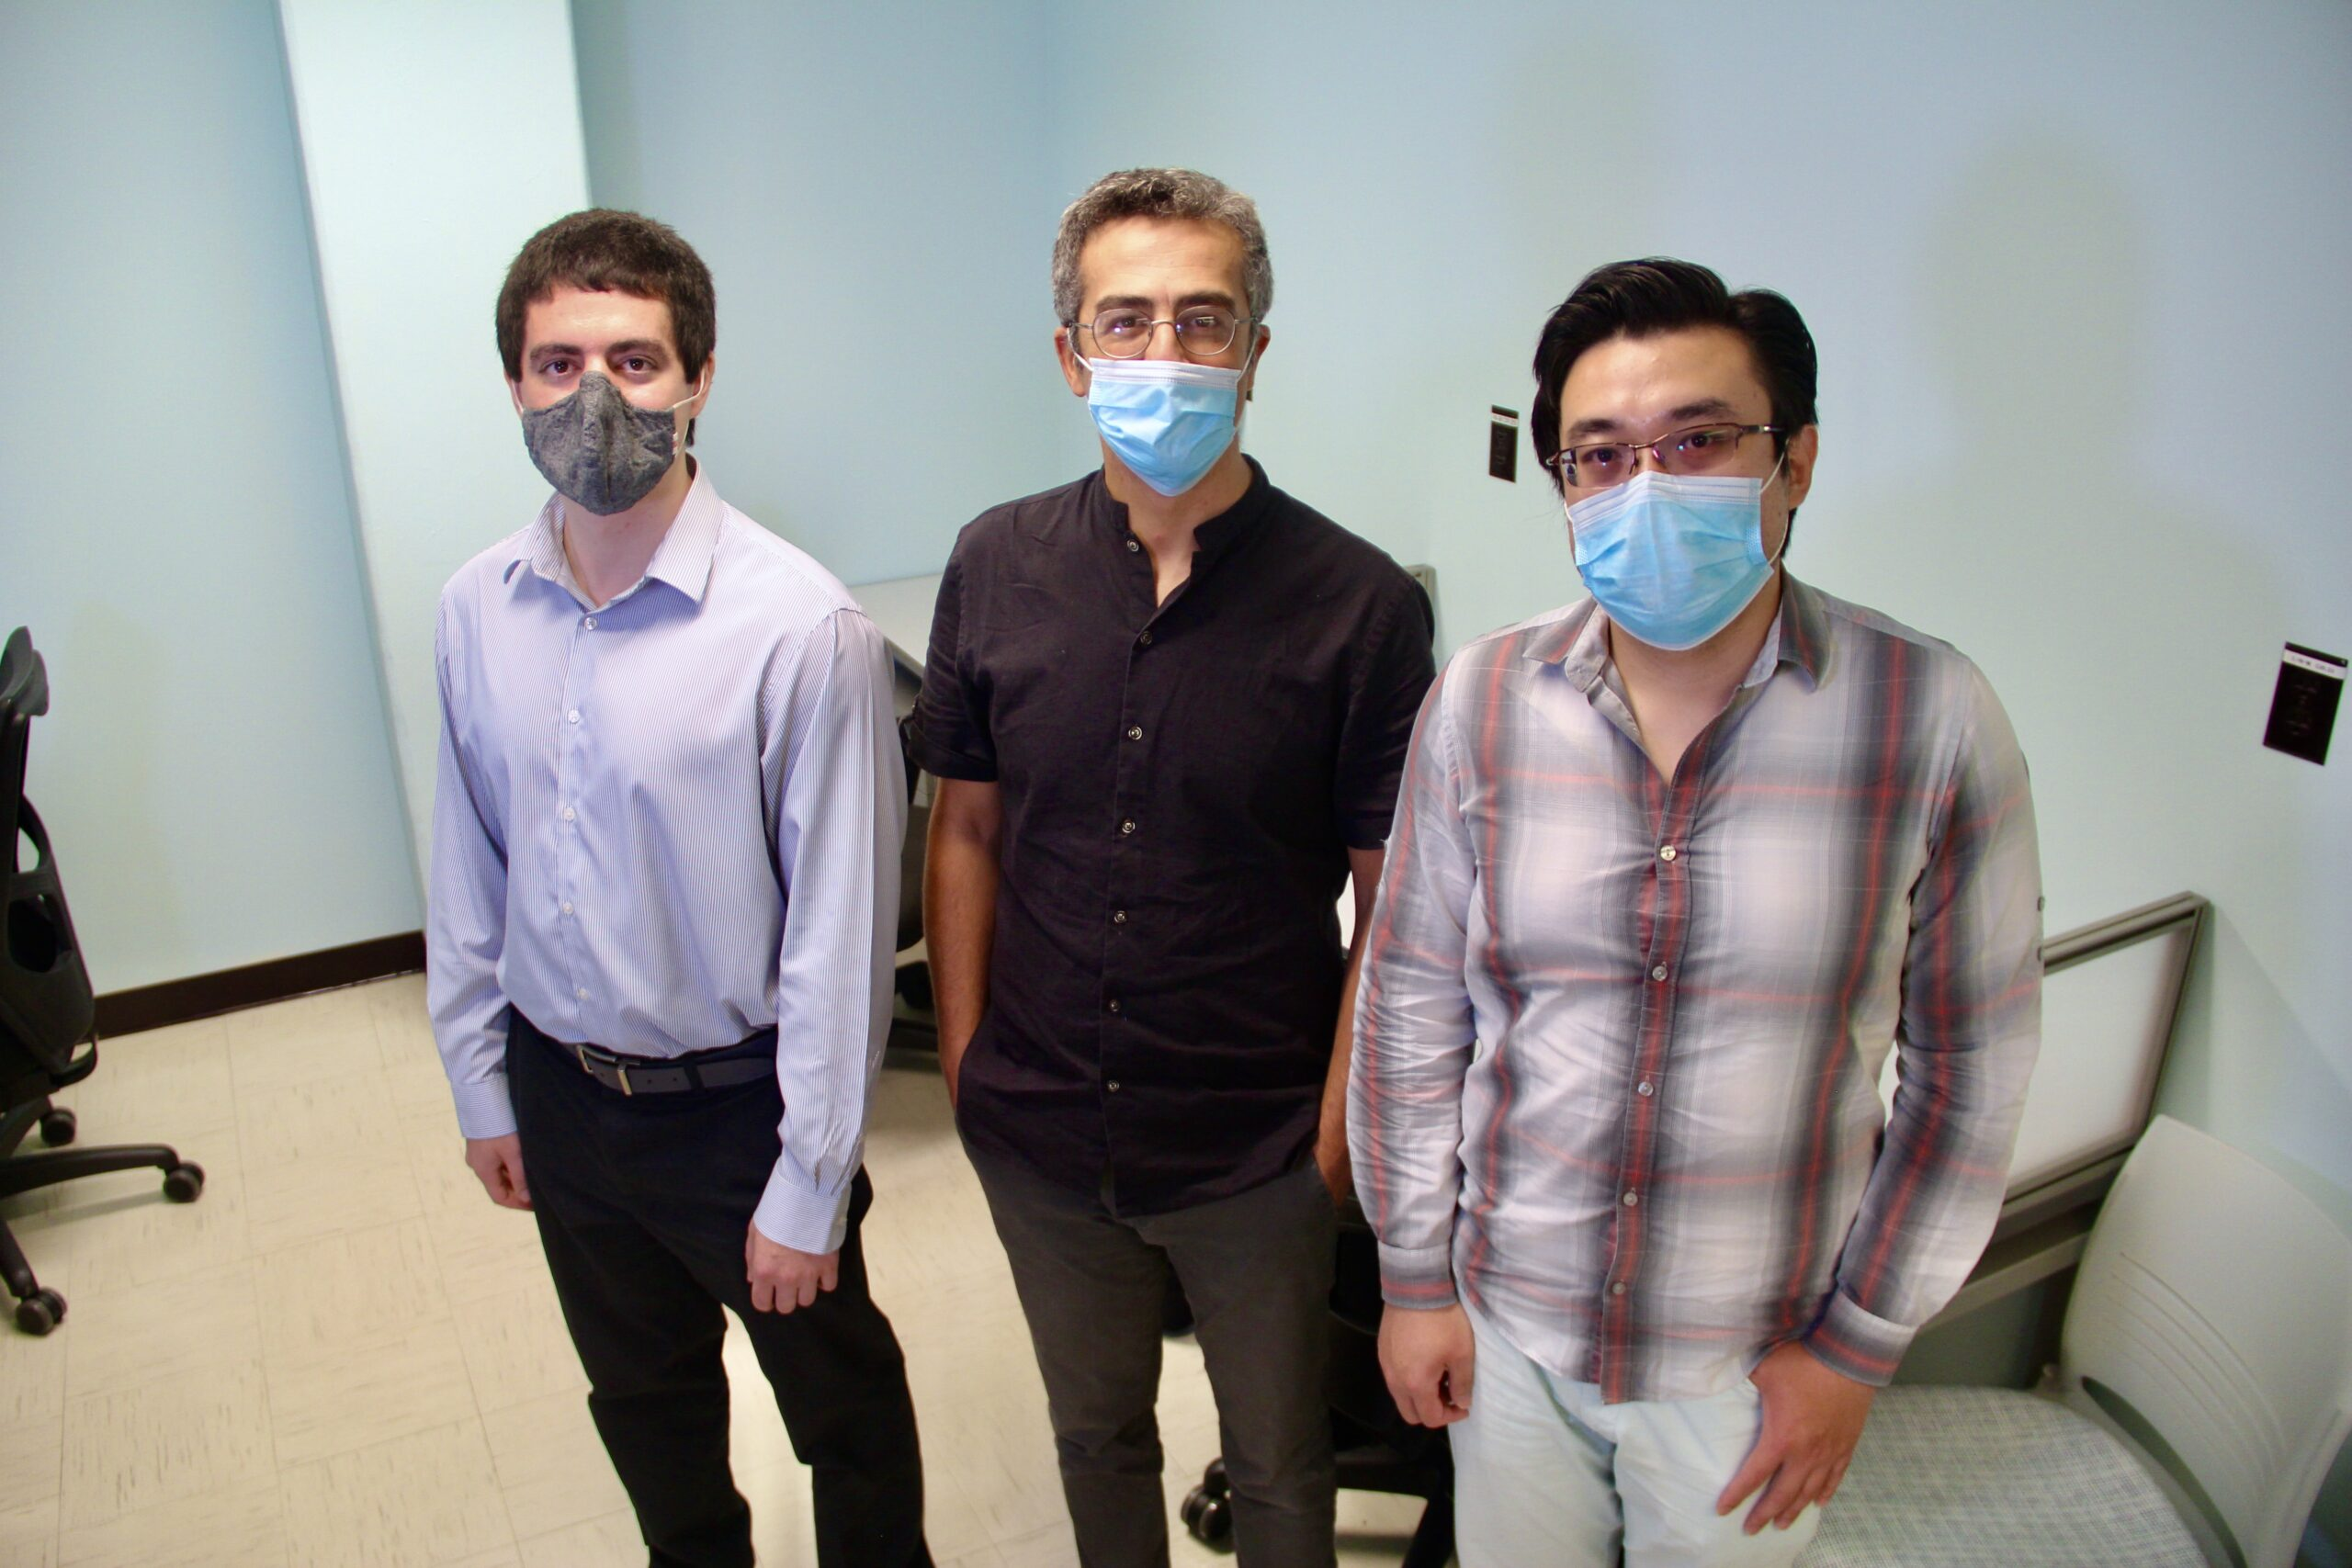 Uzay Emir stands with his doctoral students Xin Shen and Nicholas Farley